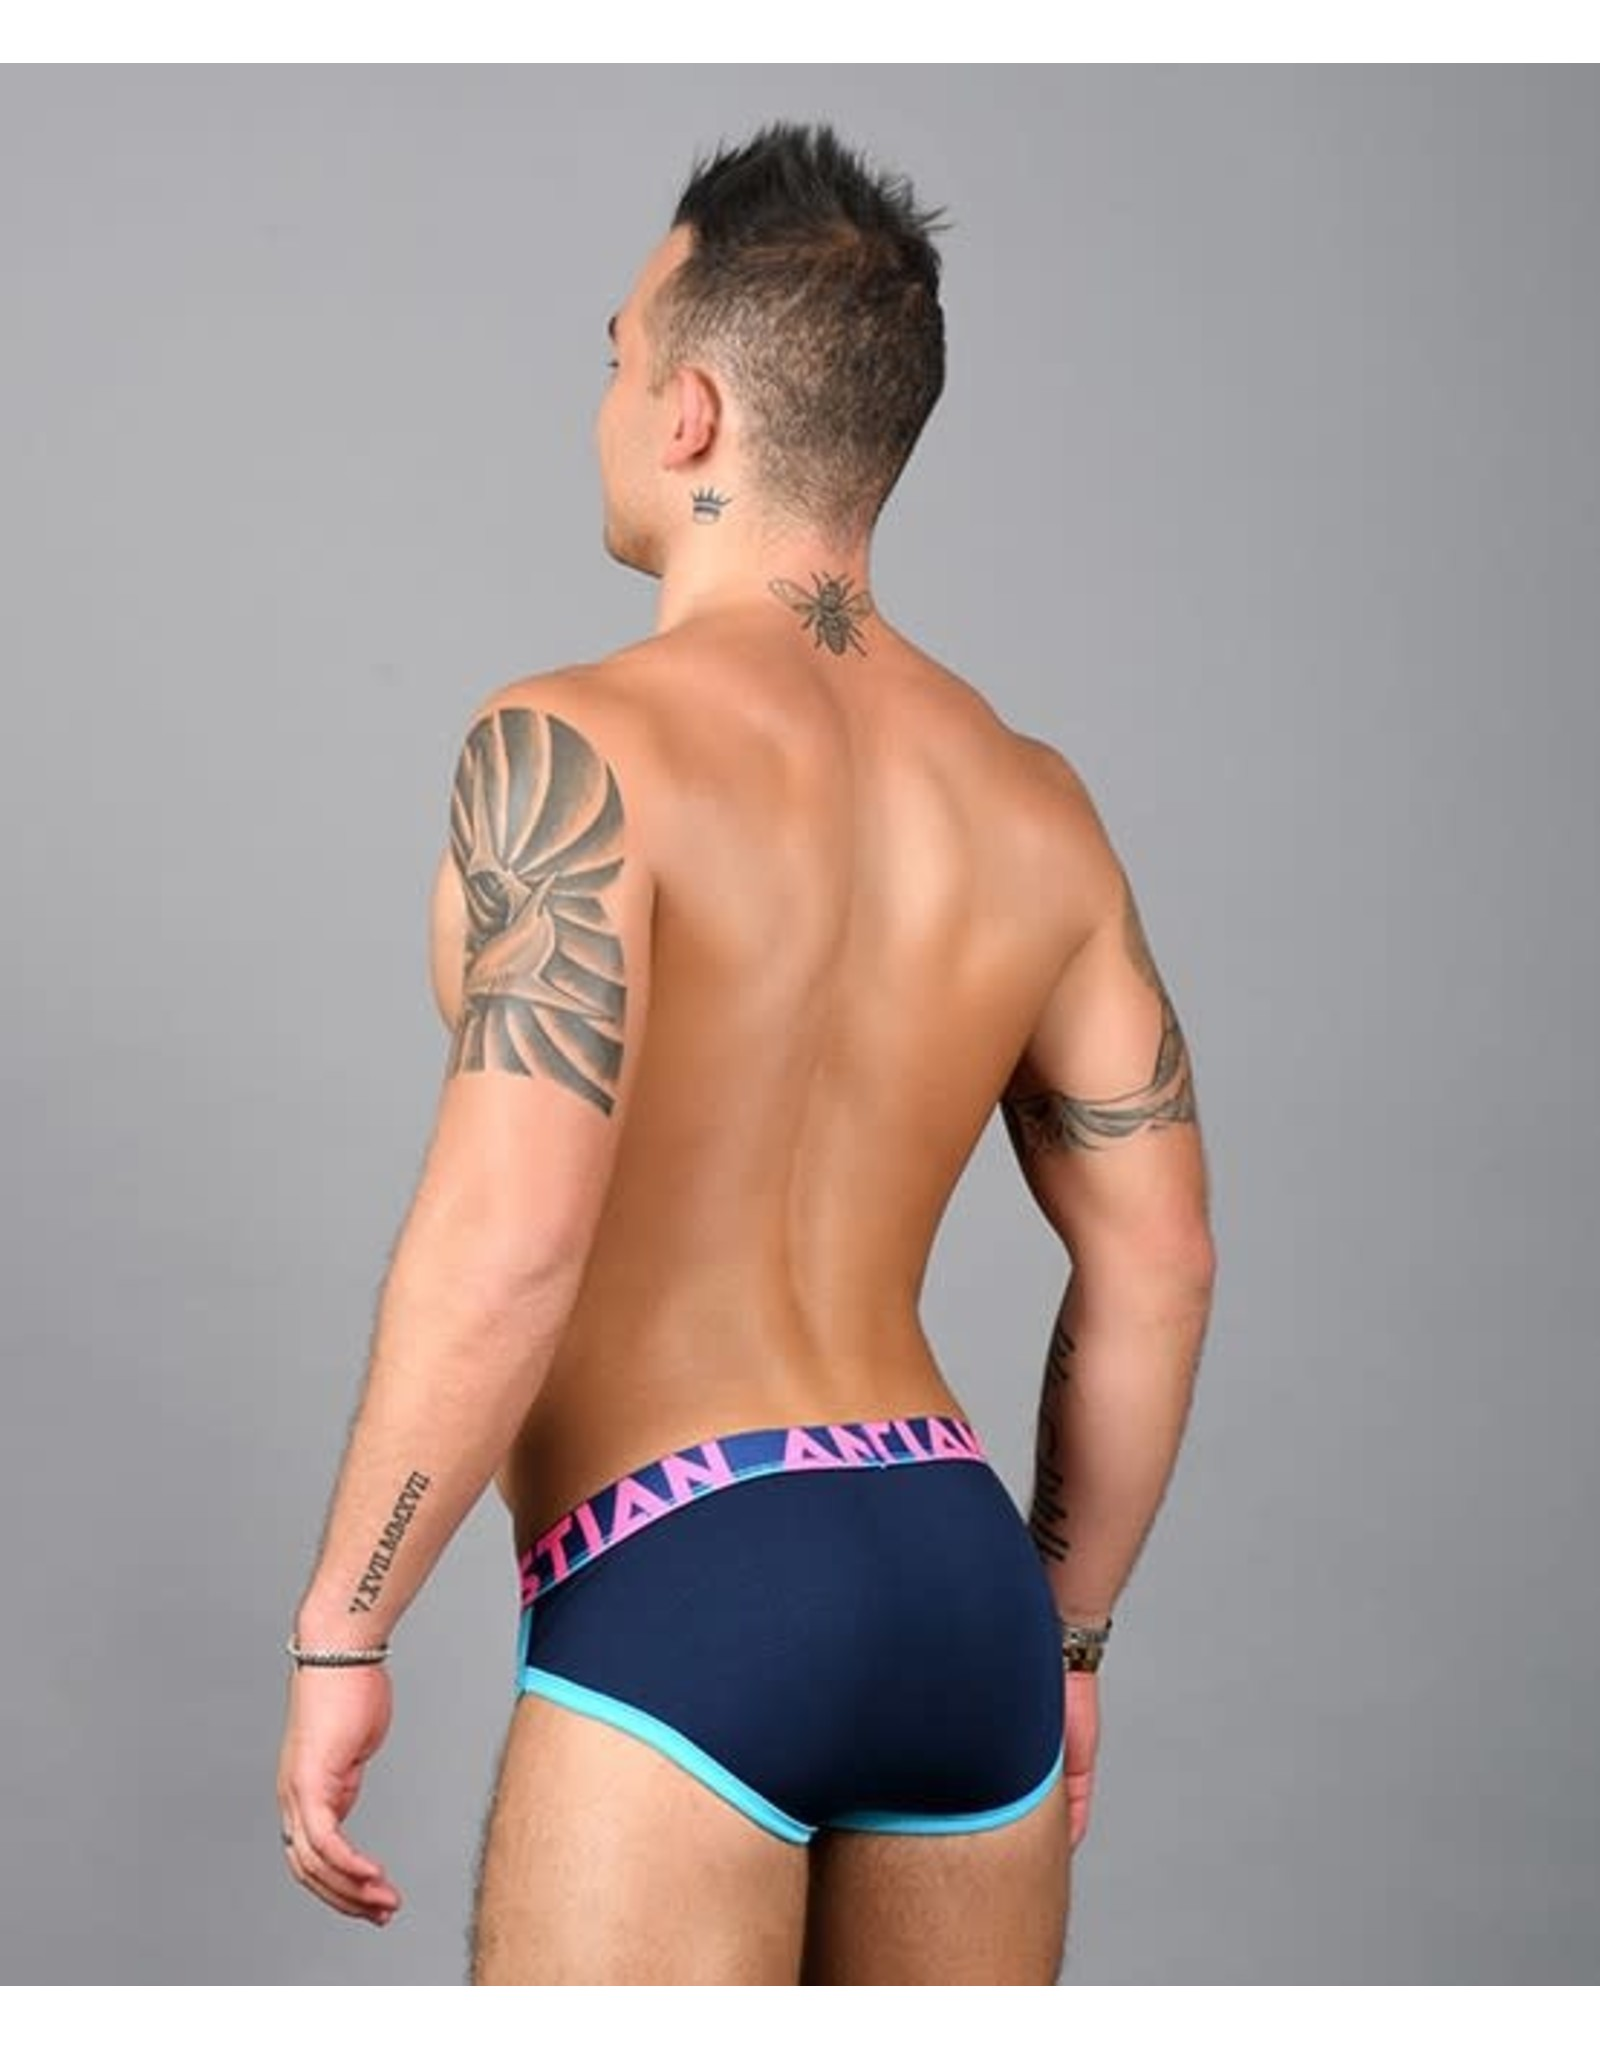 ANDREW CHRISTIAN AC COOLFLEX MODAL BRIEF W/ SHOW-IT